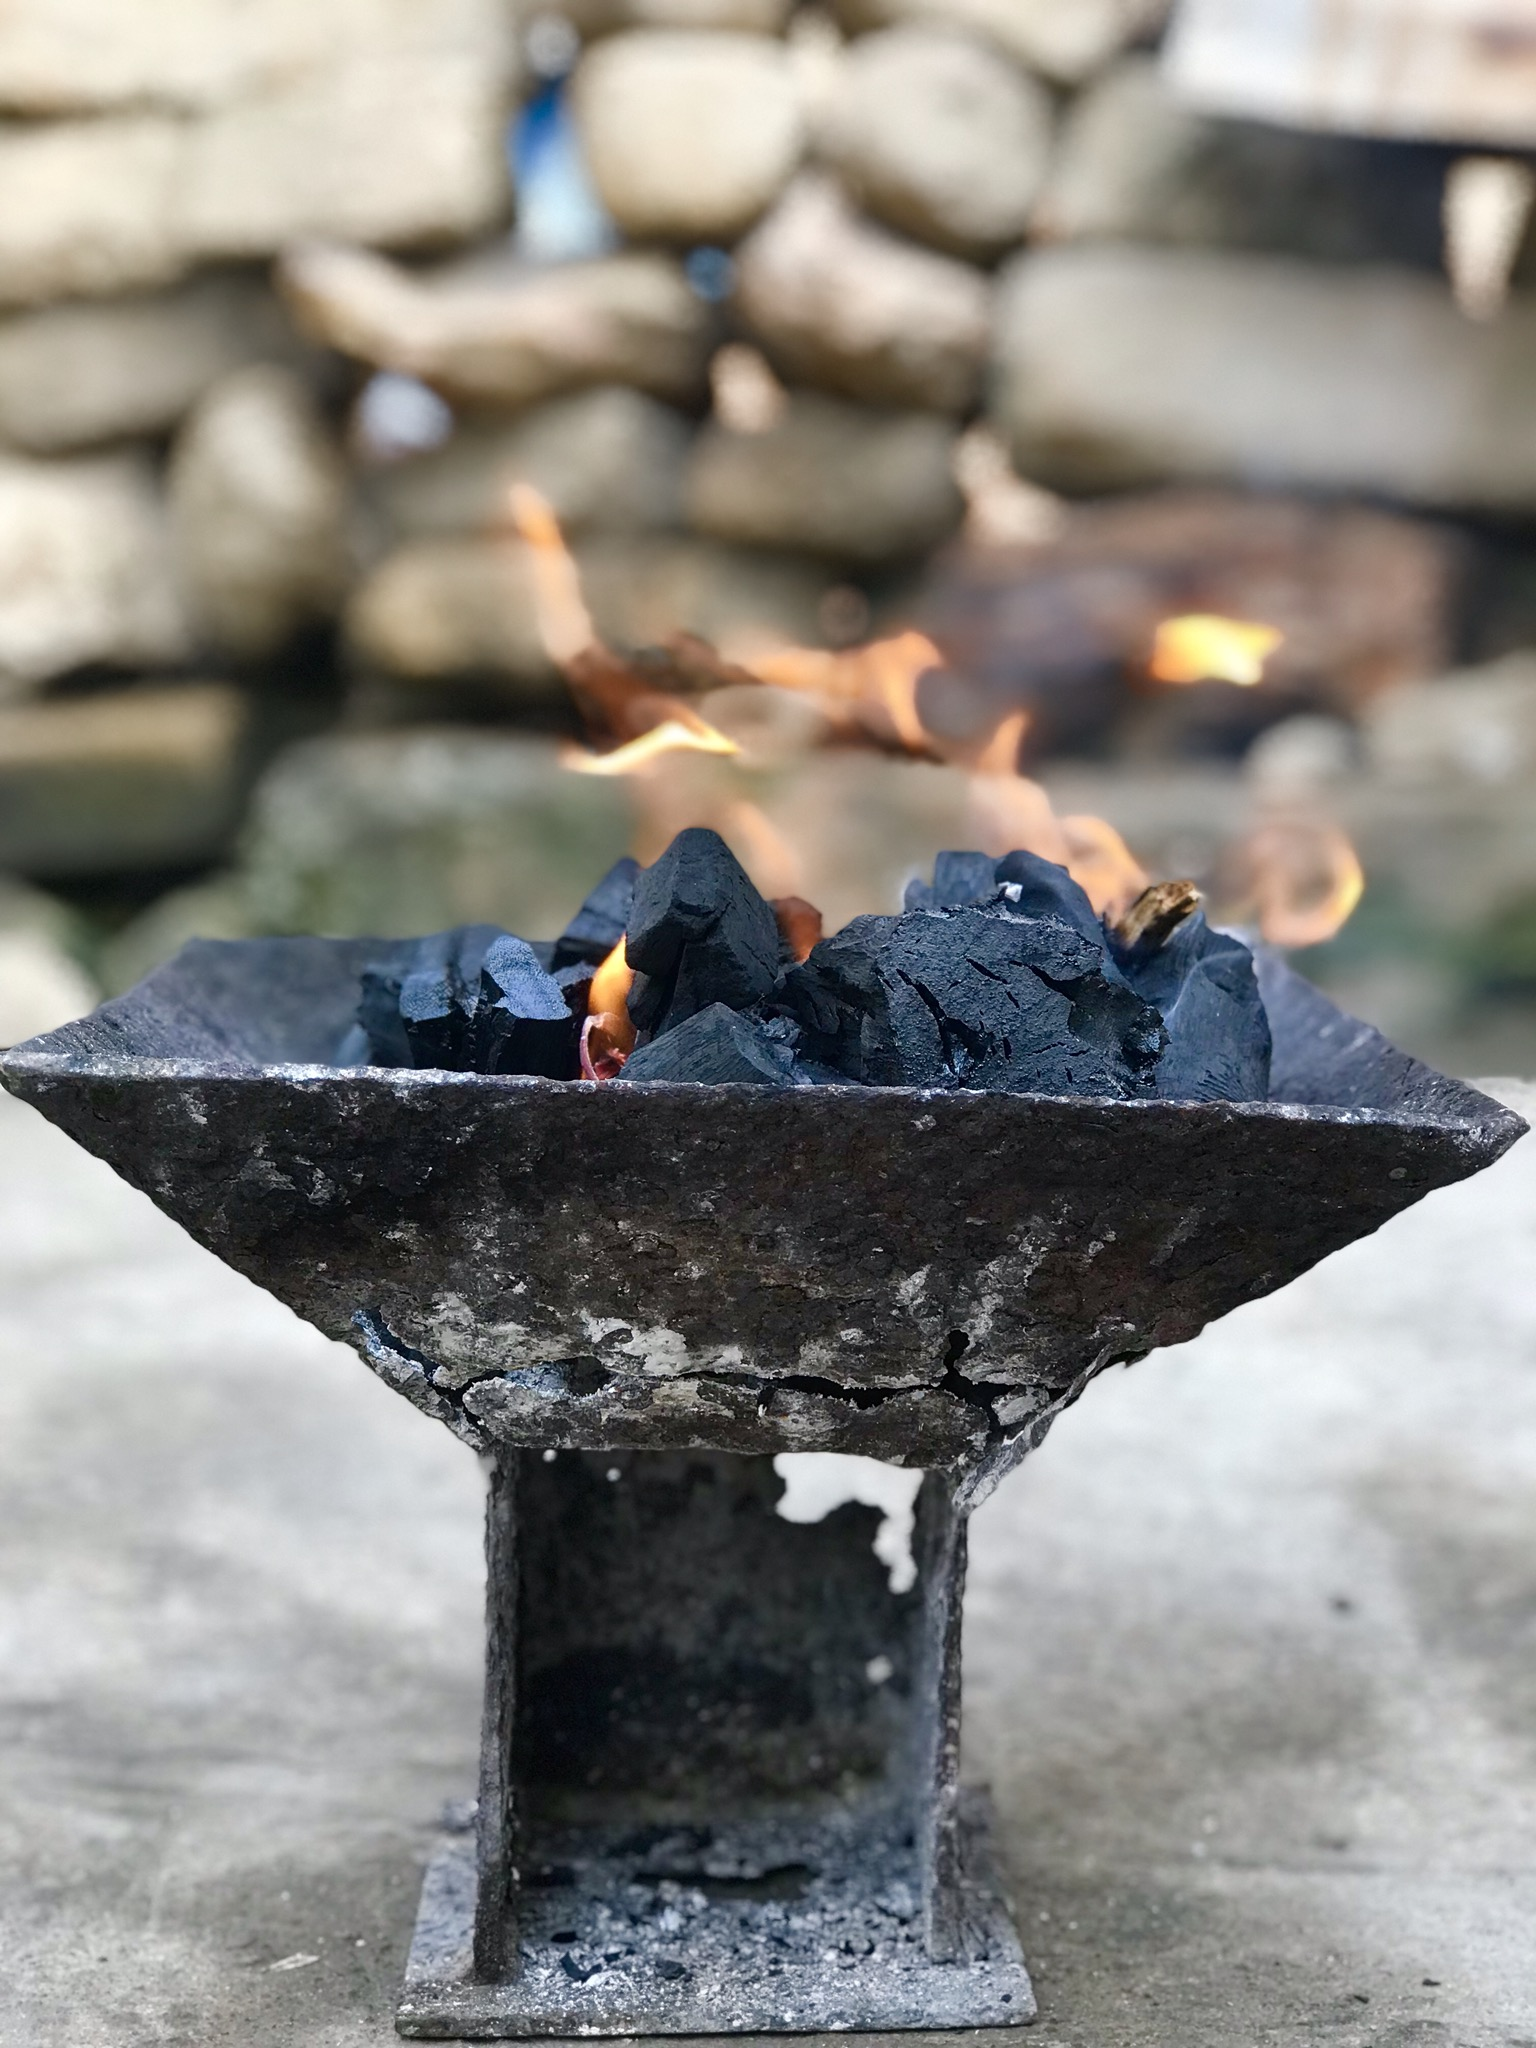 Local Guides Connect - Ghanaians Modern Day Major Use of Coalpot - Local  Guides Connect